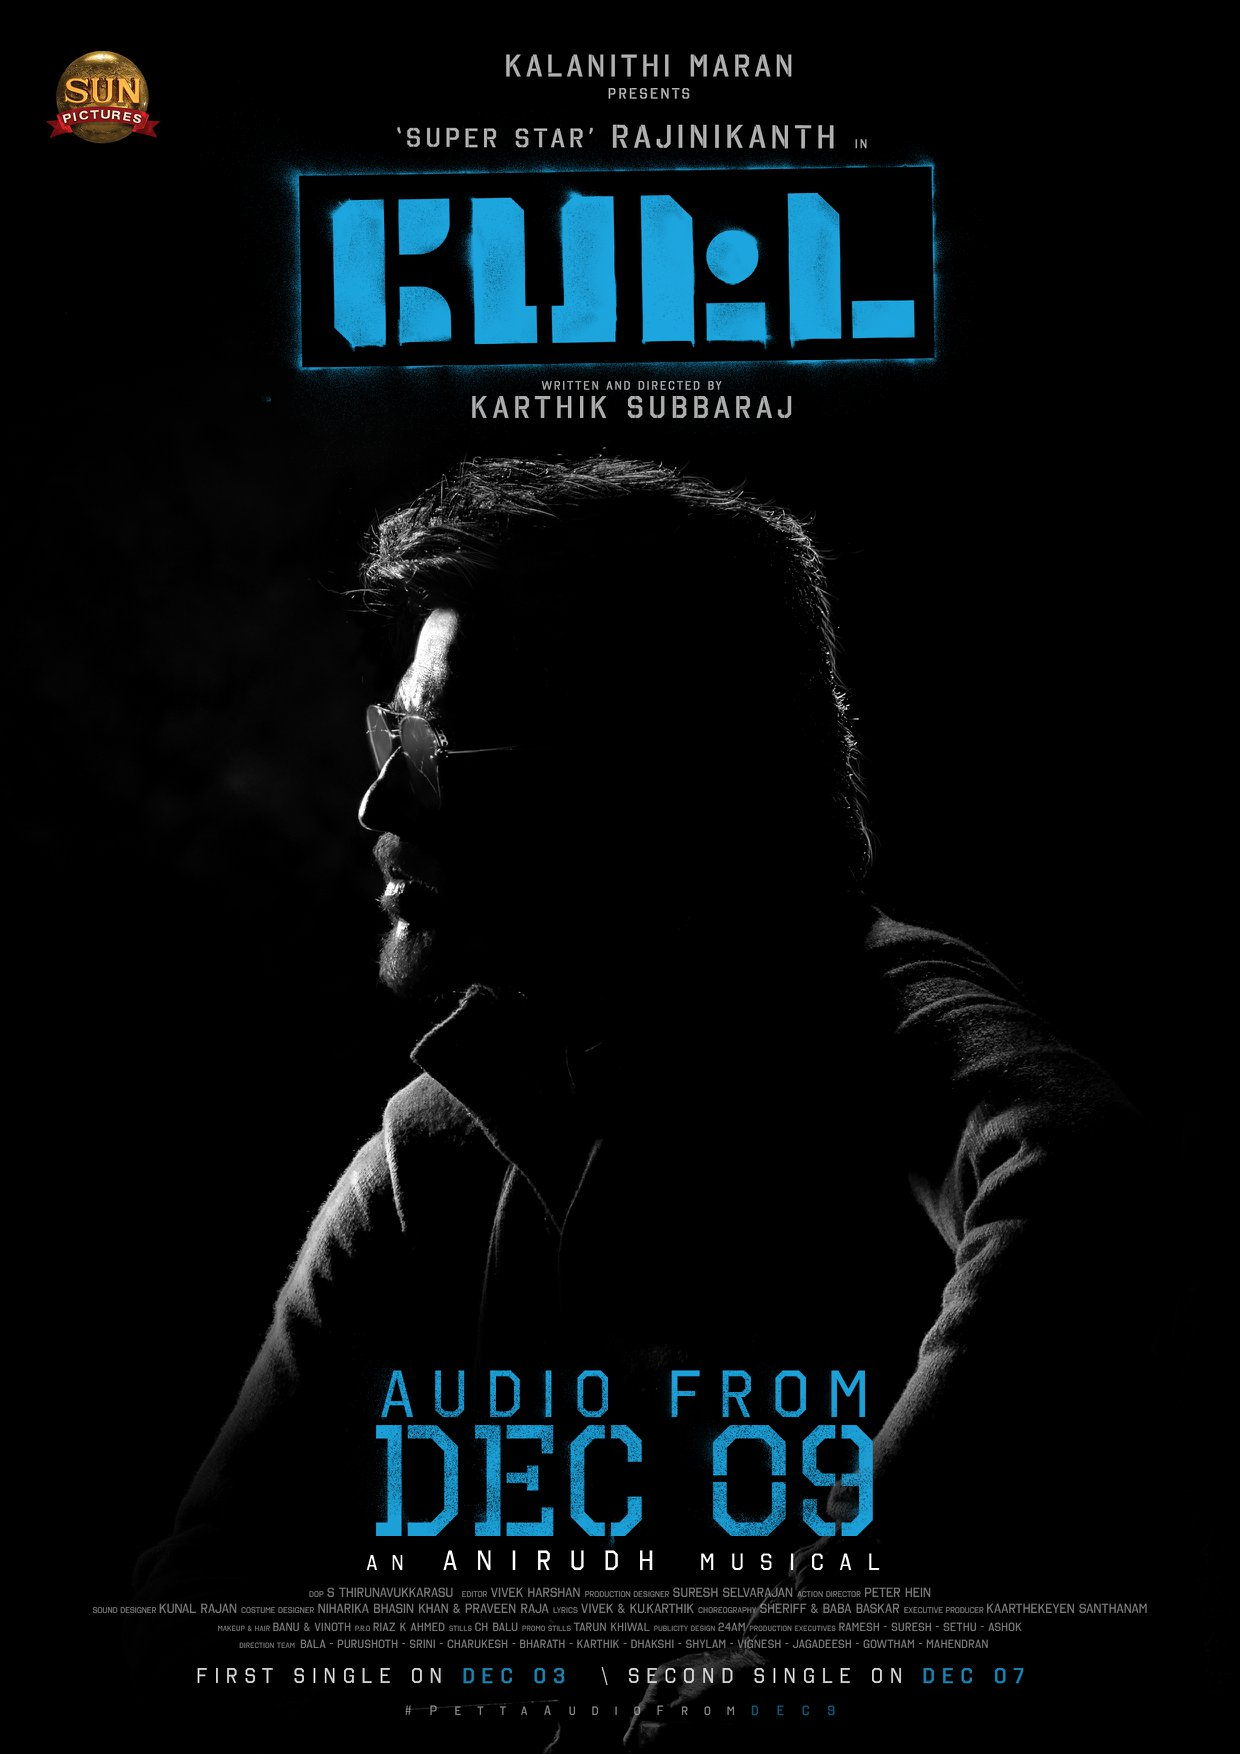 Rajinikanth Petta Audio from Dec 9th Poster HD